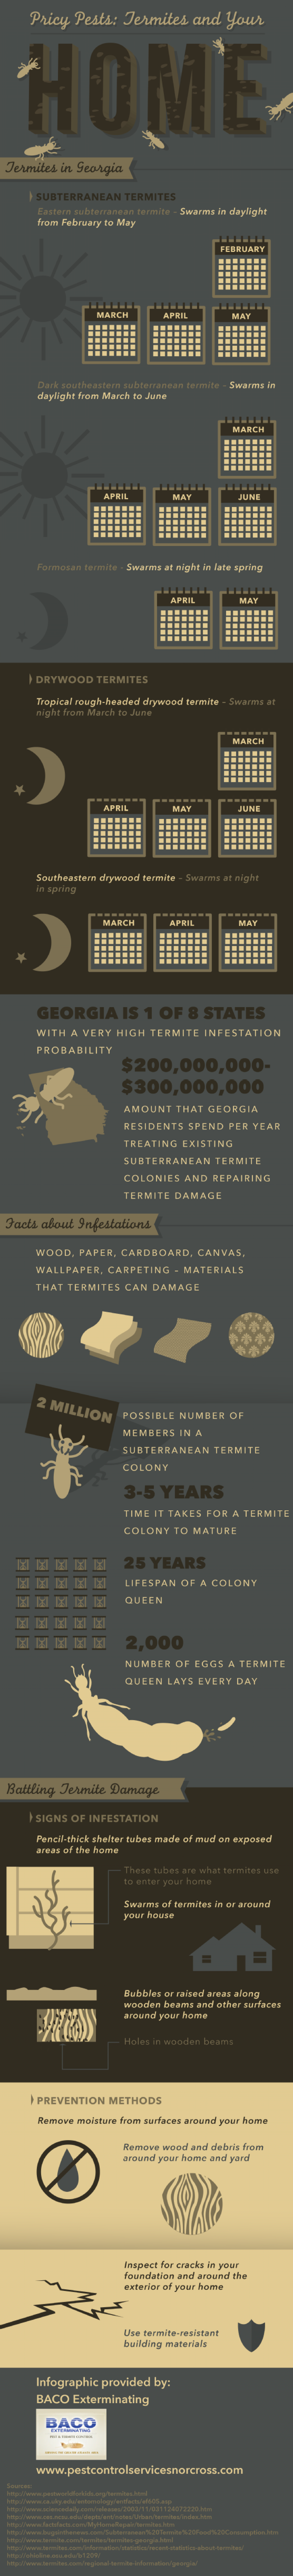 Pricy Pests: Termites and Your Home Infographic